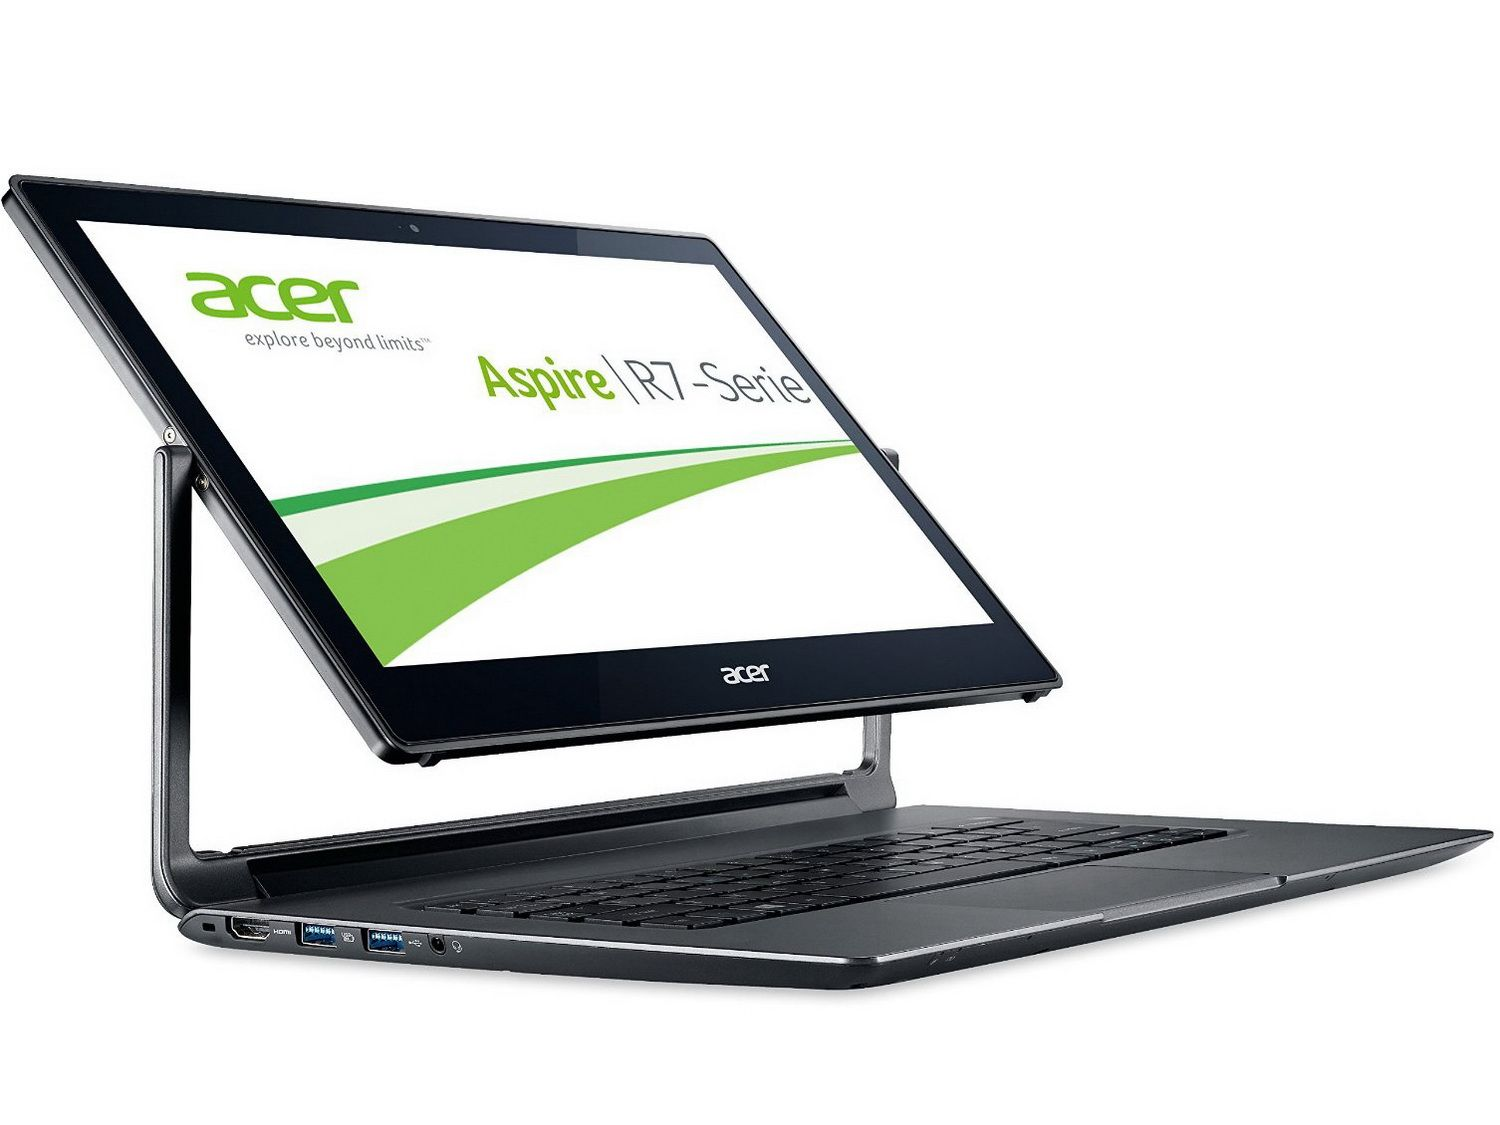 Harga Laptop Acer Postekno Pinterest Laptops